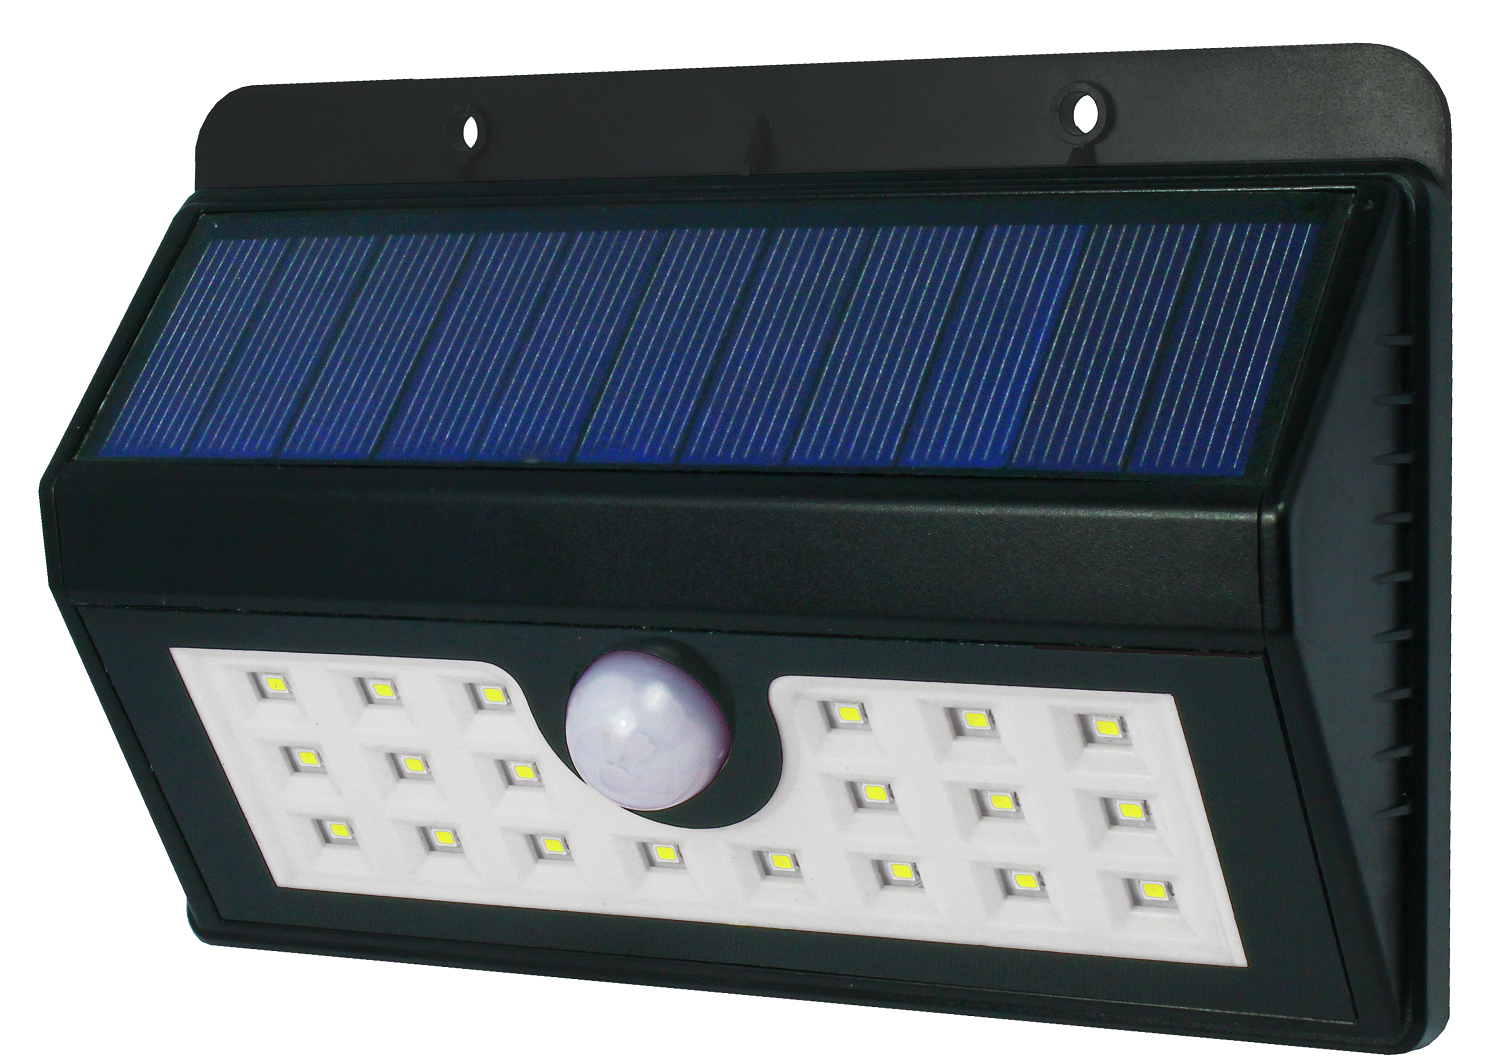 POWERplus Boa Solar - USB Powered PIR Sensor Outdoor Light